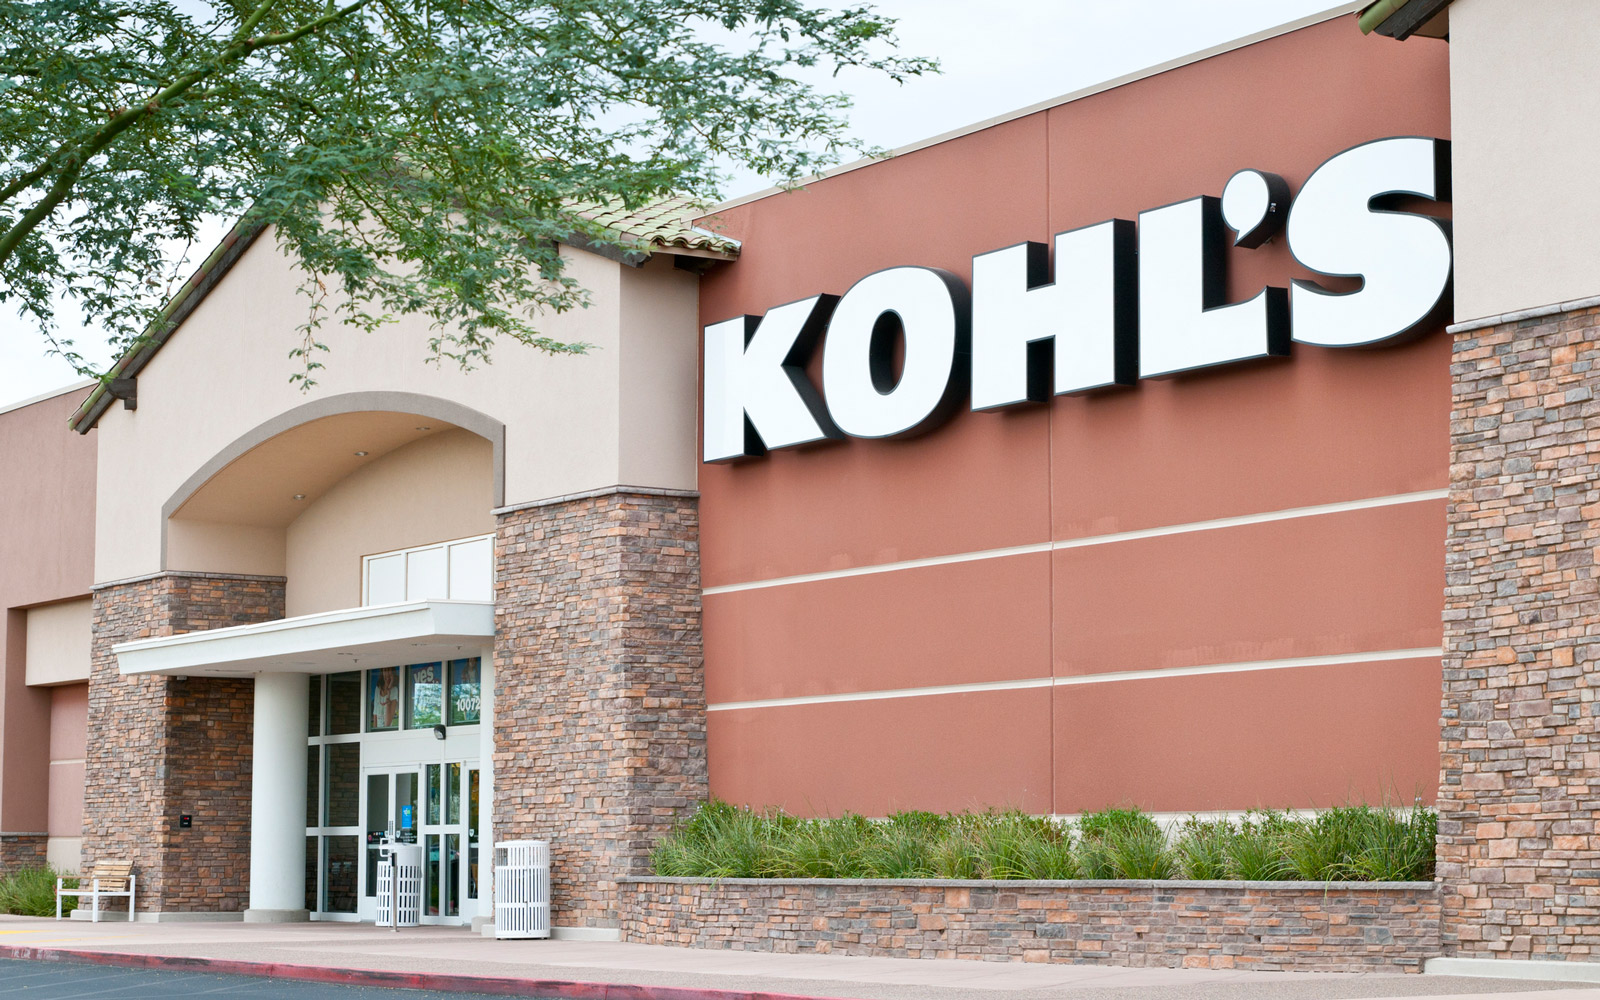 Kohl's Retail Department Store Front with Sign and Trees